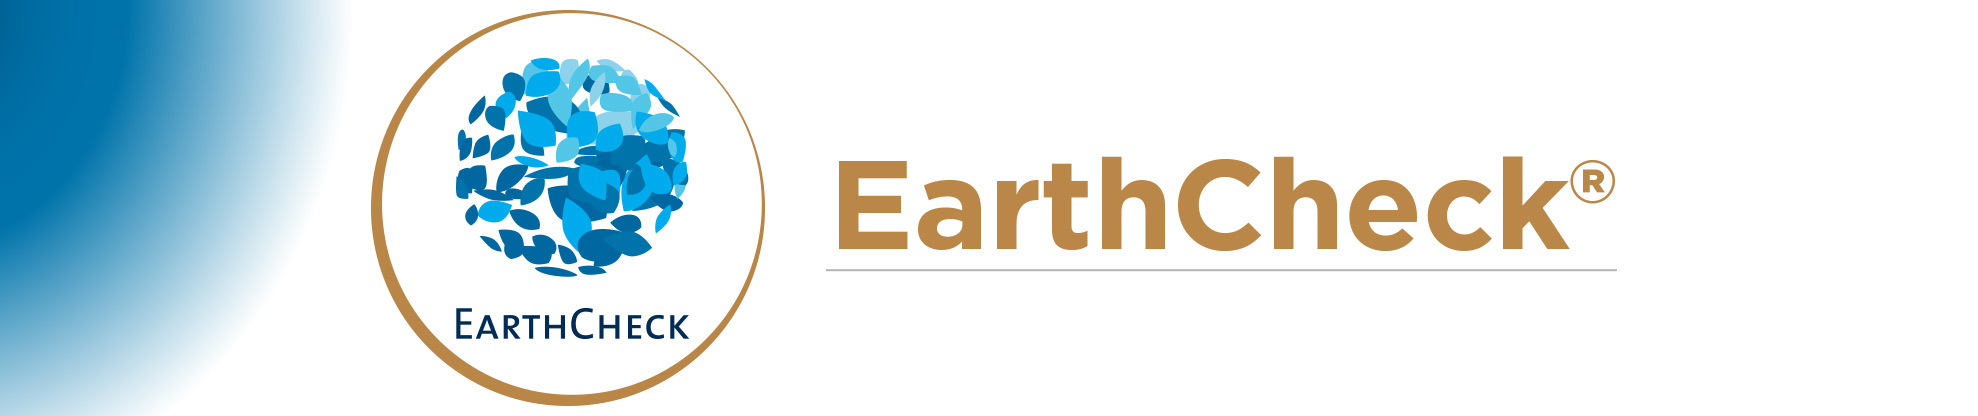 EarthCheck Turismo Turismo sustentable Hoteles EarthCheck México, EarthCheck Tourism Sustainable tourism Hotels